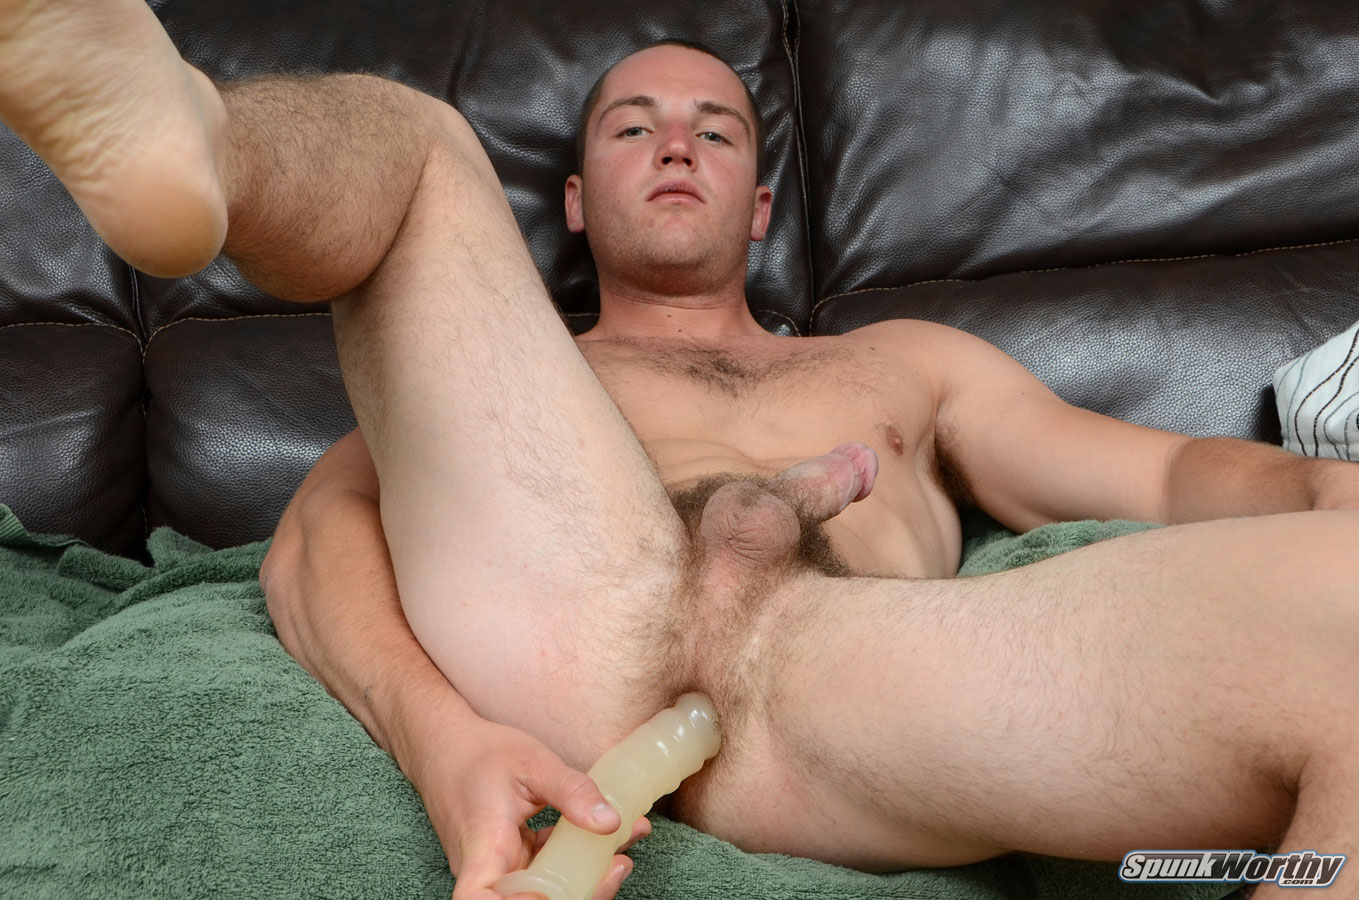 SpunkWorthy-Dean-Straight-Marine-Uses-A-Dildo-On-Hairy-Ass-Amateur-Gay-Porn-05 Ripped Marine Fucks His Straight Hairy Ass With A Dildo